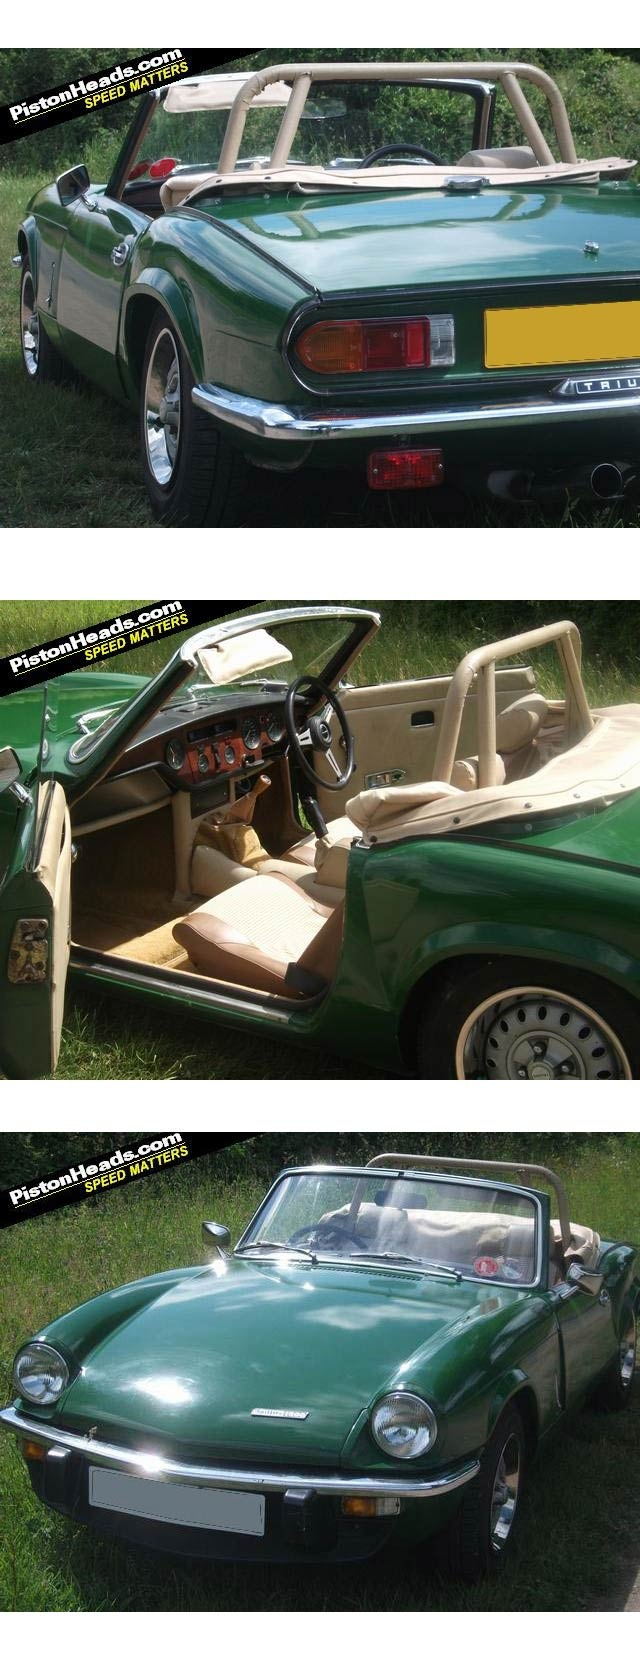 My first sports car back in the 70's was this exact car.   Triumph Spitfire!